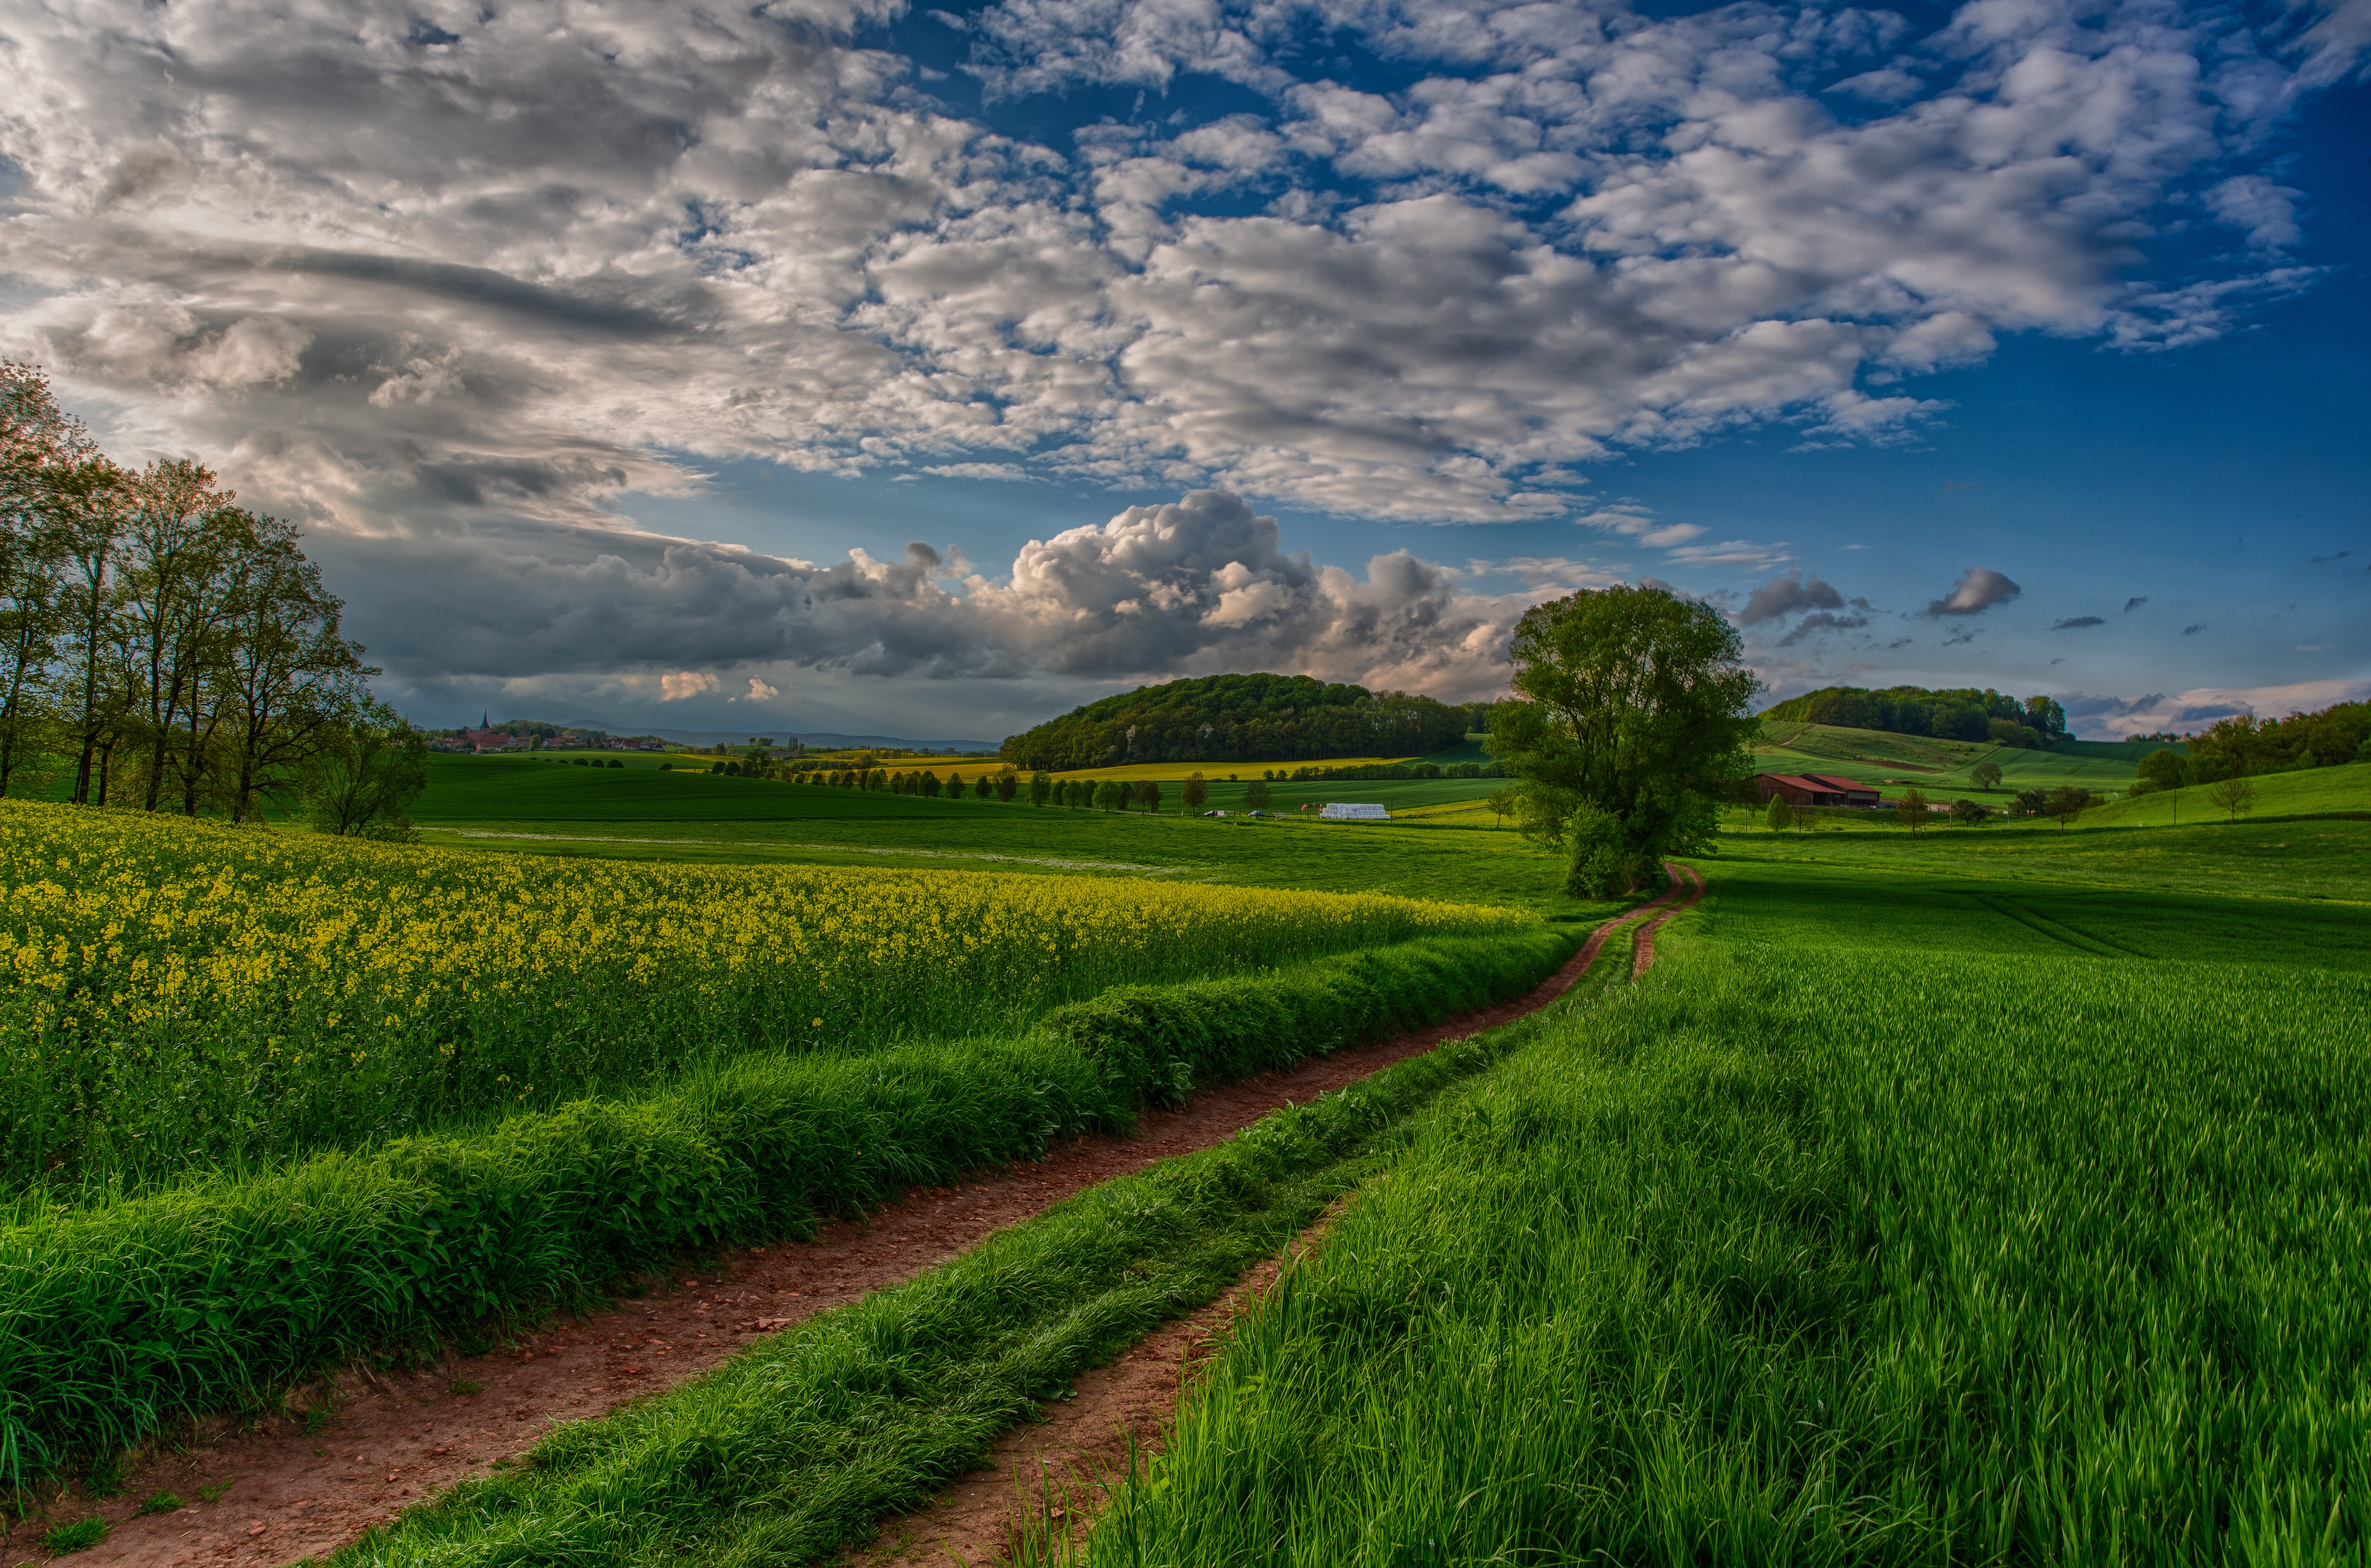 Обои nature, landscape, scenery, view